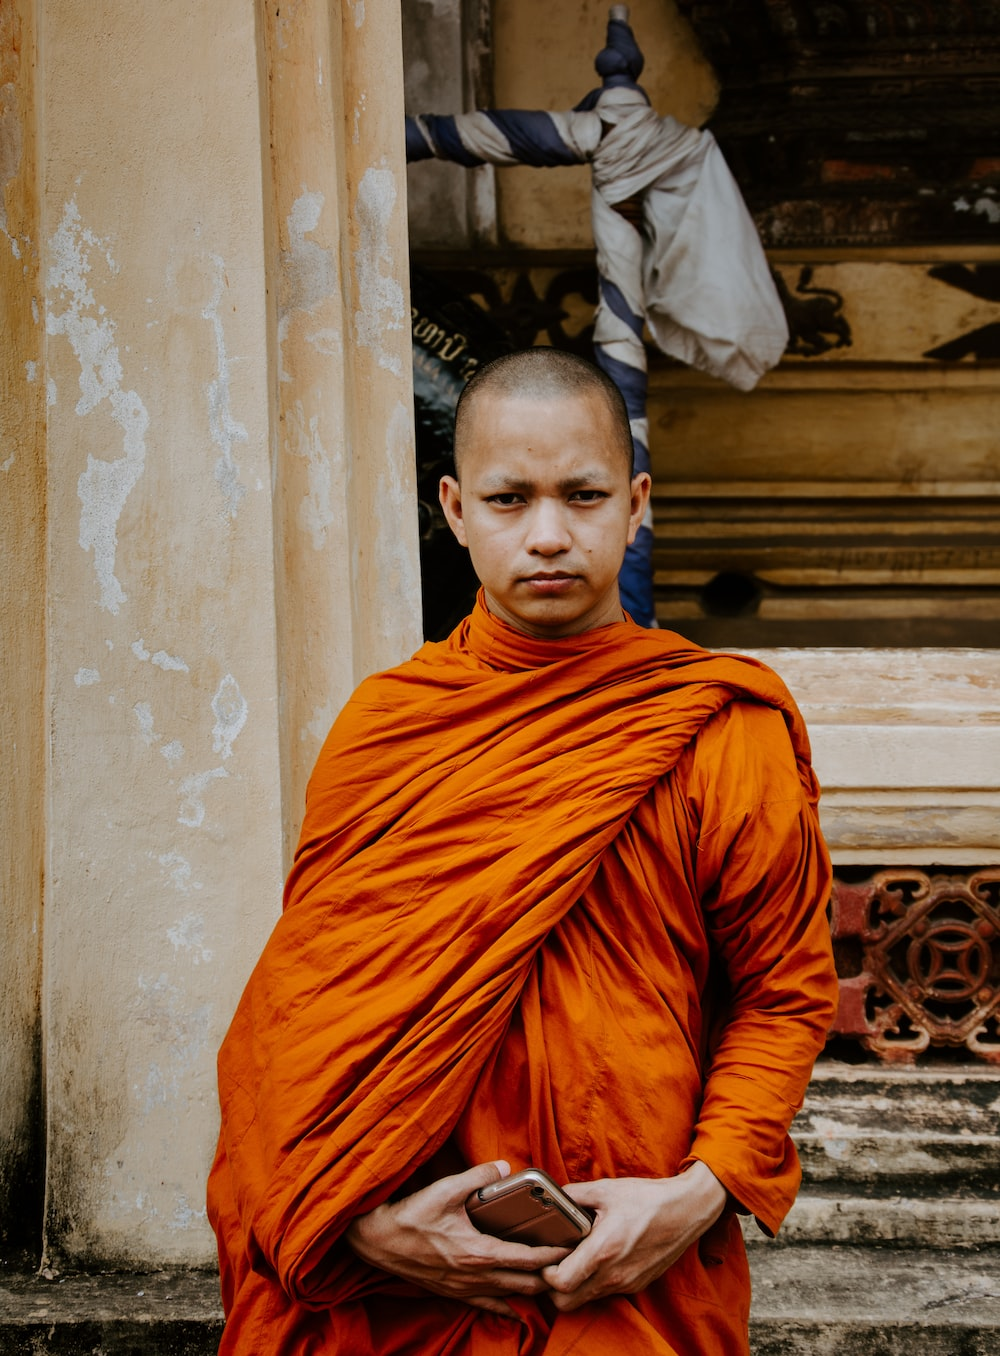 monk holding smartphone standing in front of building